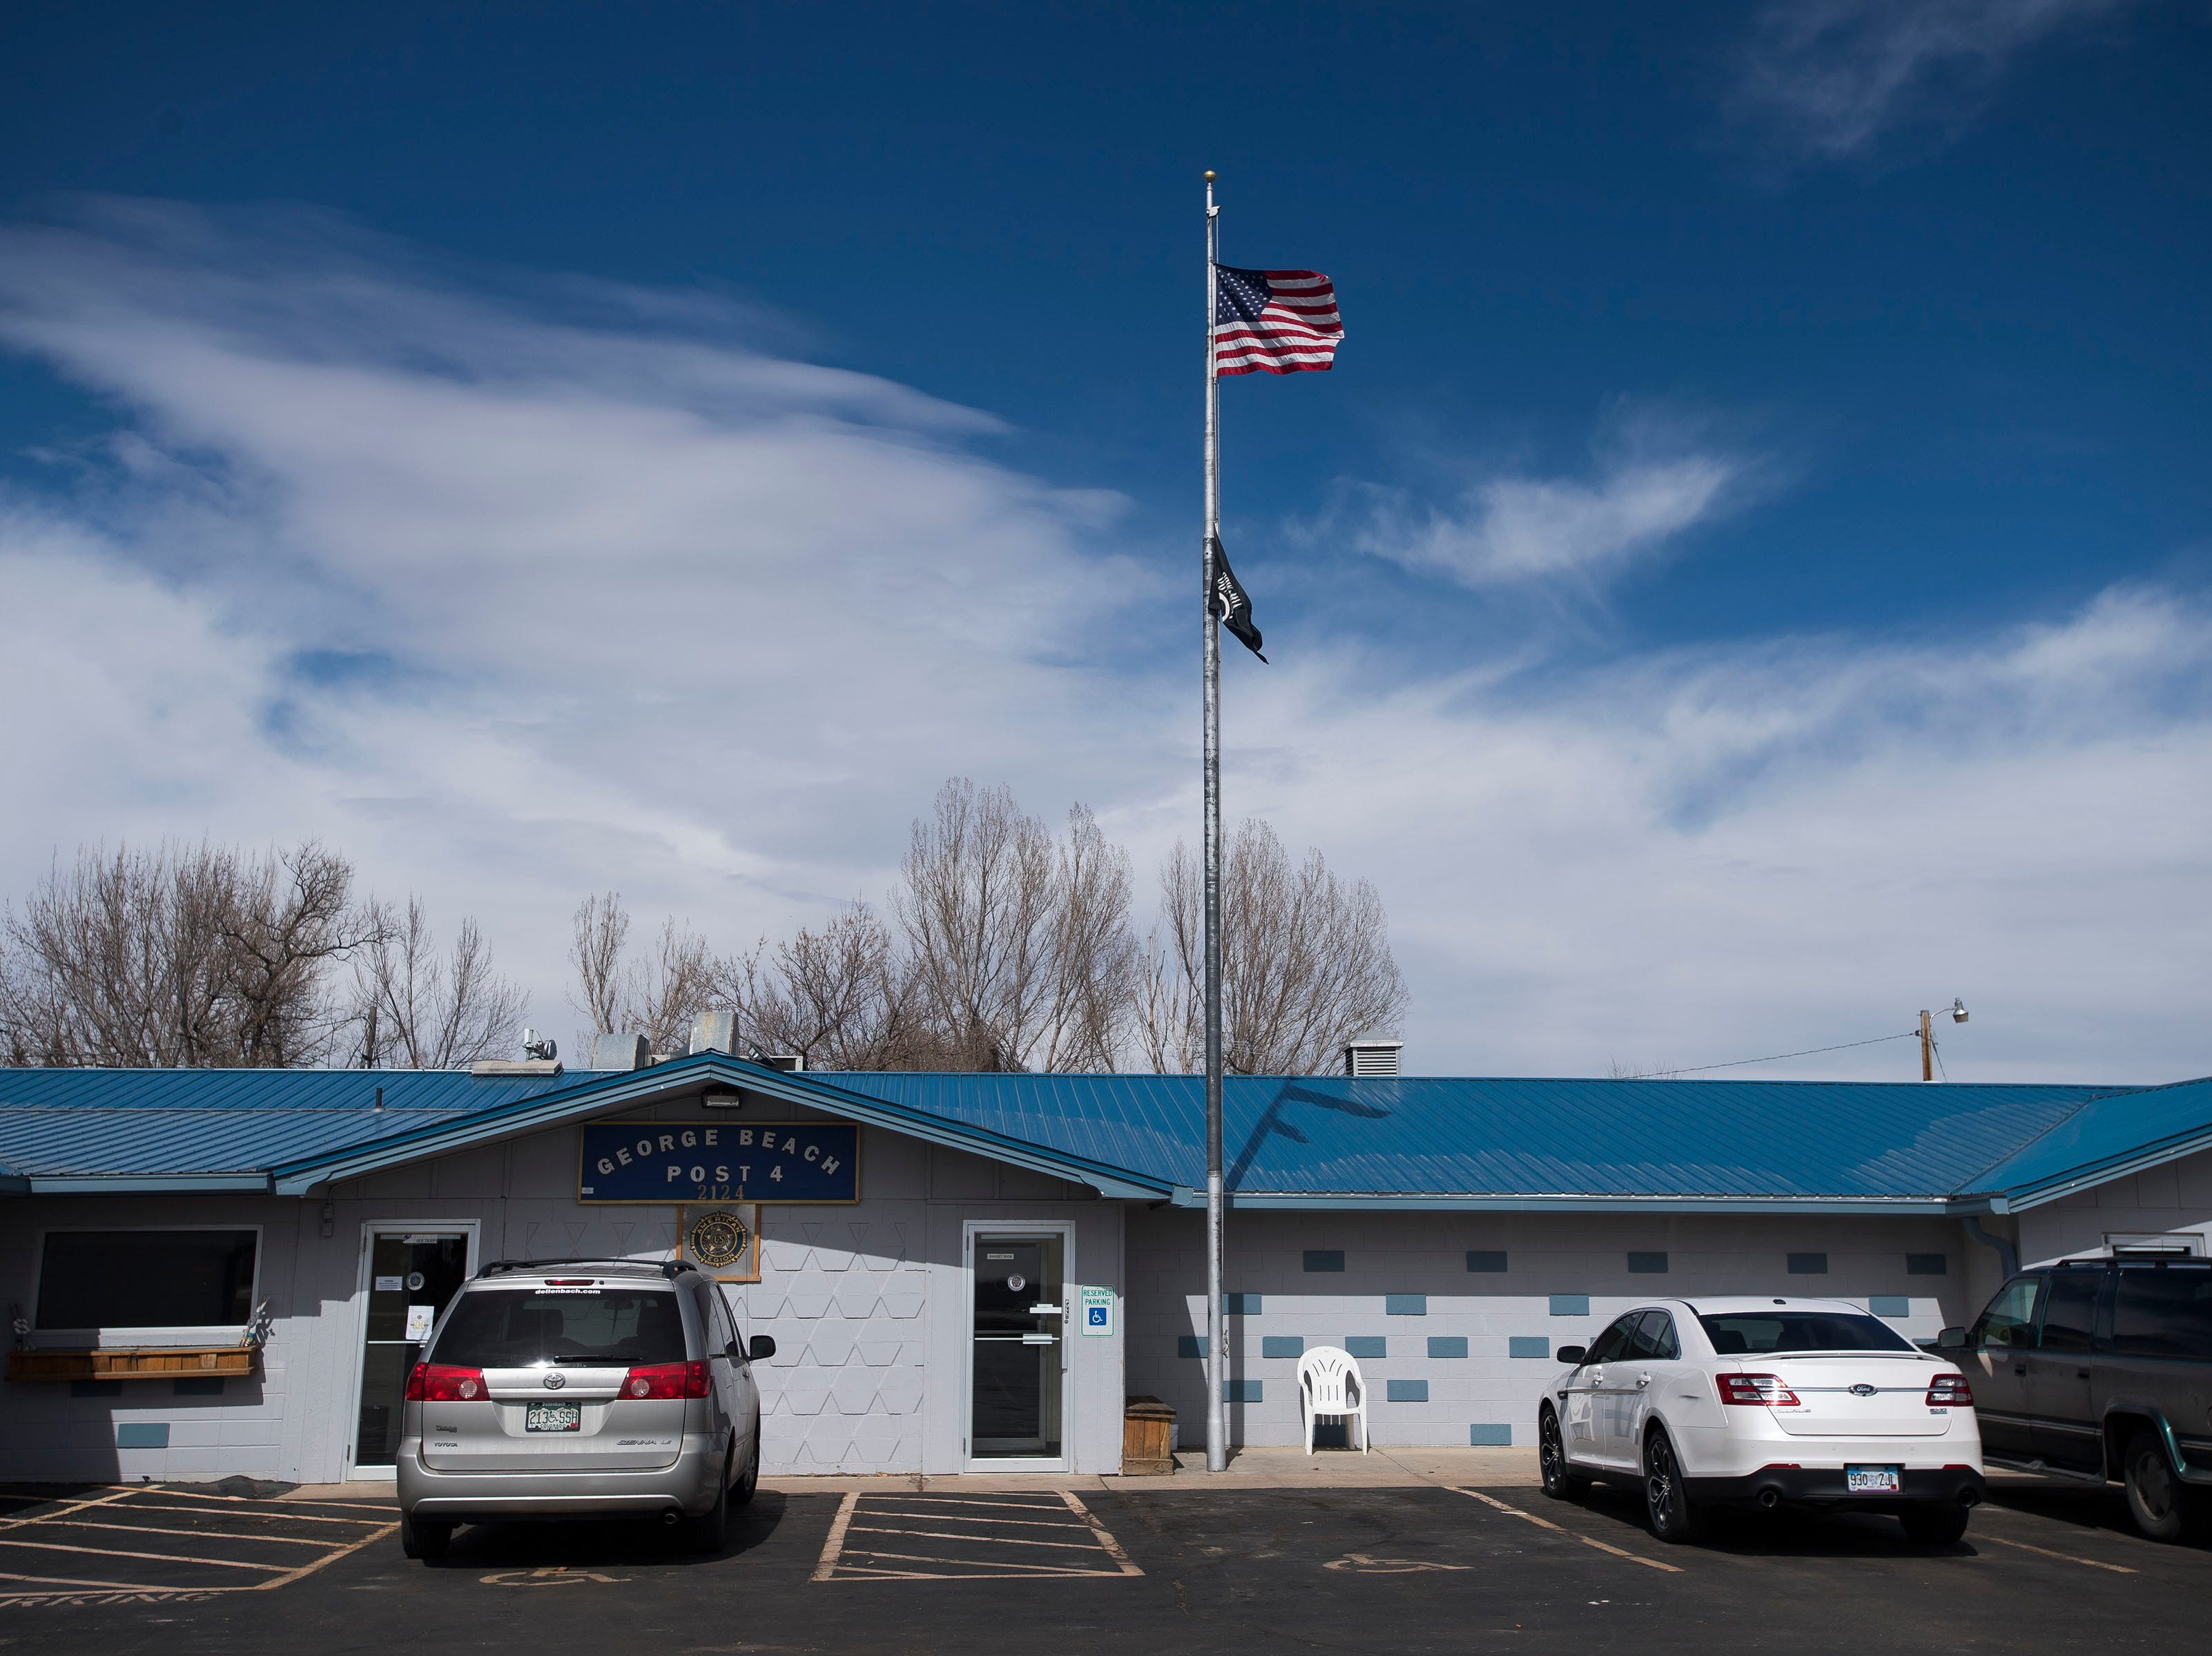 The U.S. flag and POW/MIA flag fly above the entrance on Tuesday, March 12, 2019, at the American Legion Post Four in Fort Collins, Colo.